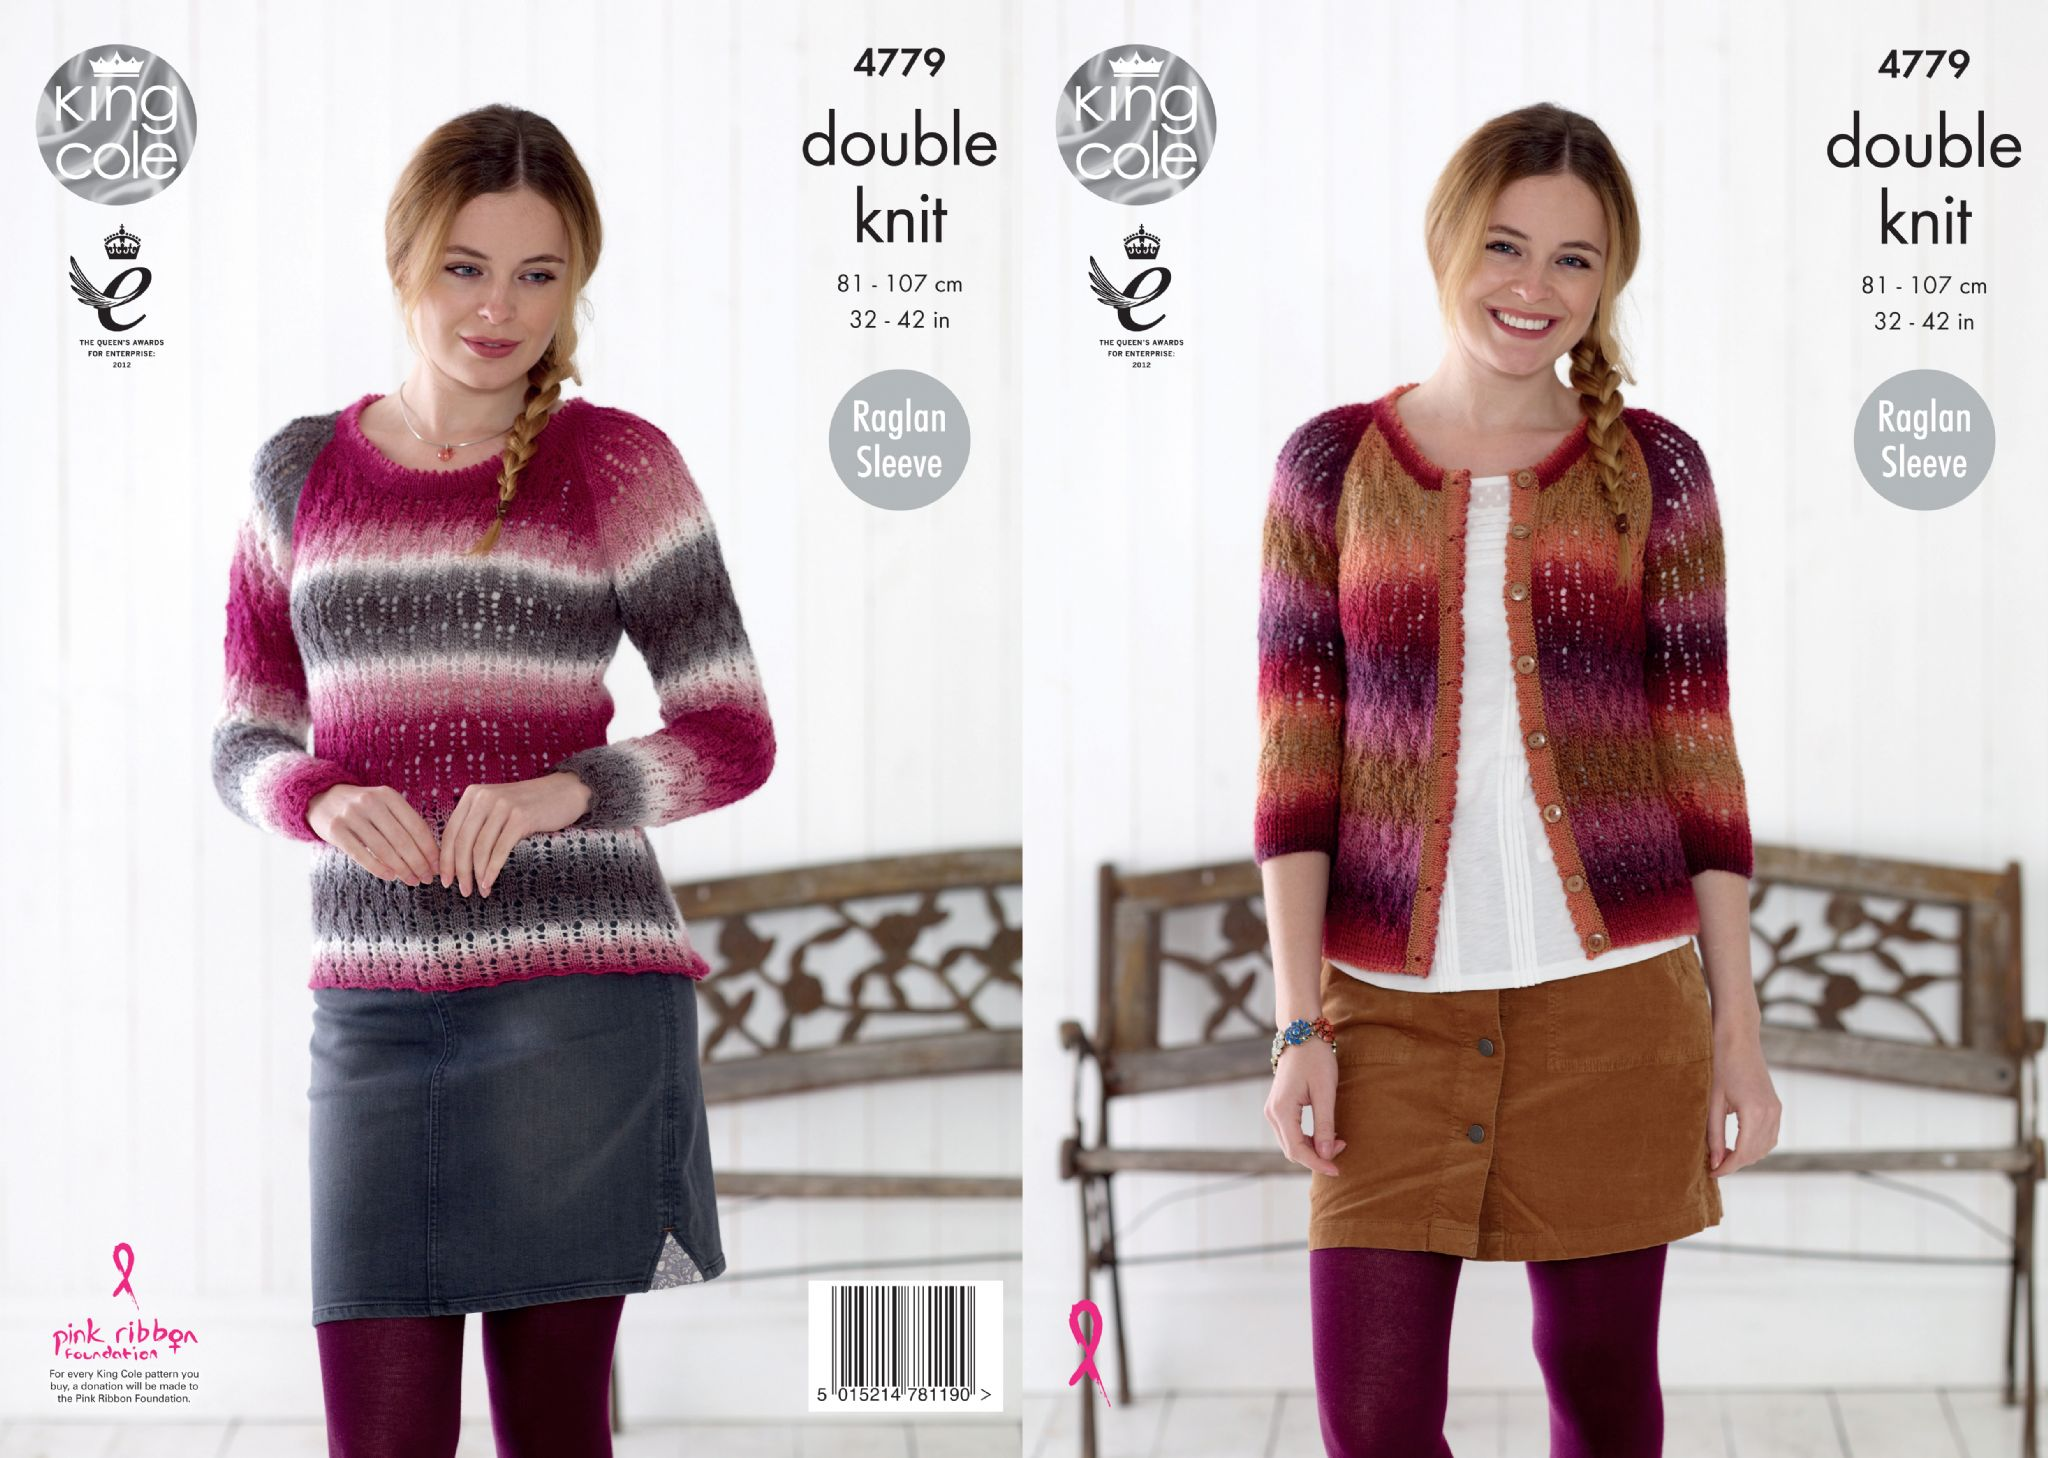 King cole riot dk knitting patterns king cole riot dk sweater and cardigan knitting pattern 4779 bankloansurffo Gallery